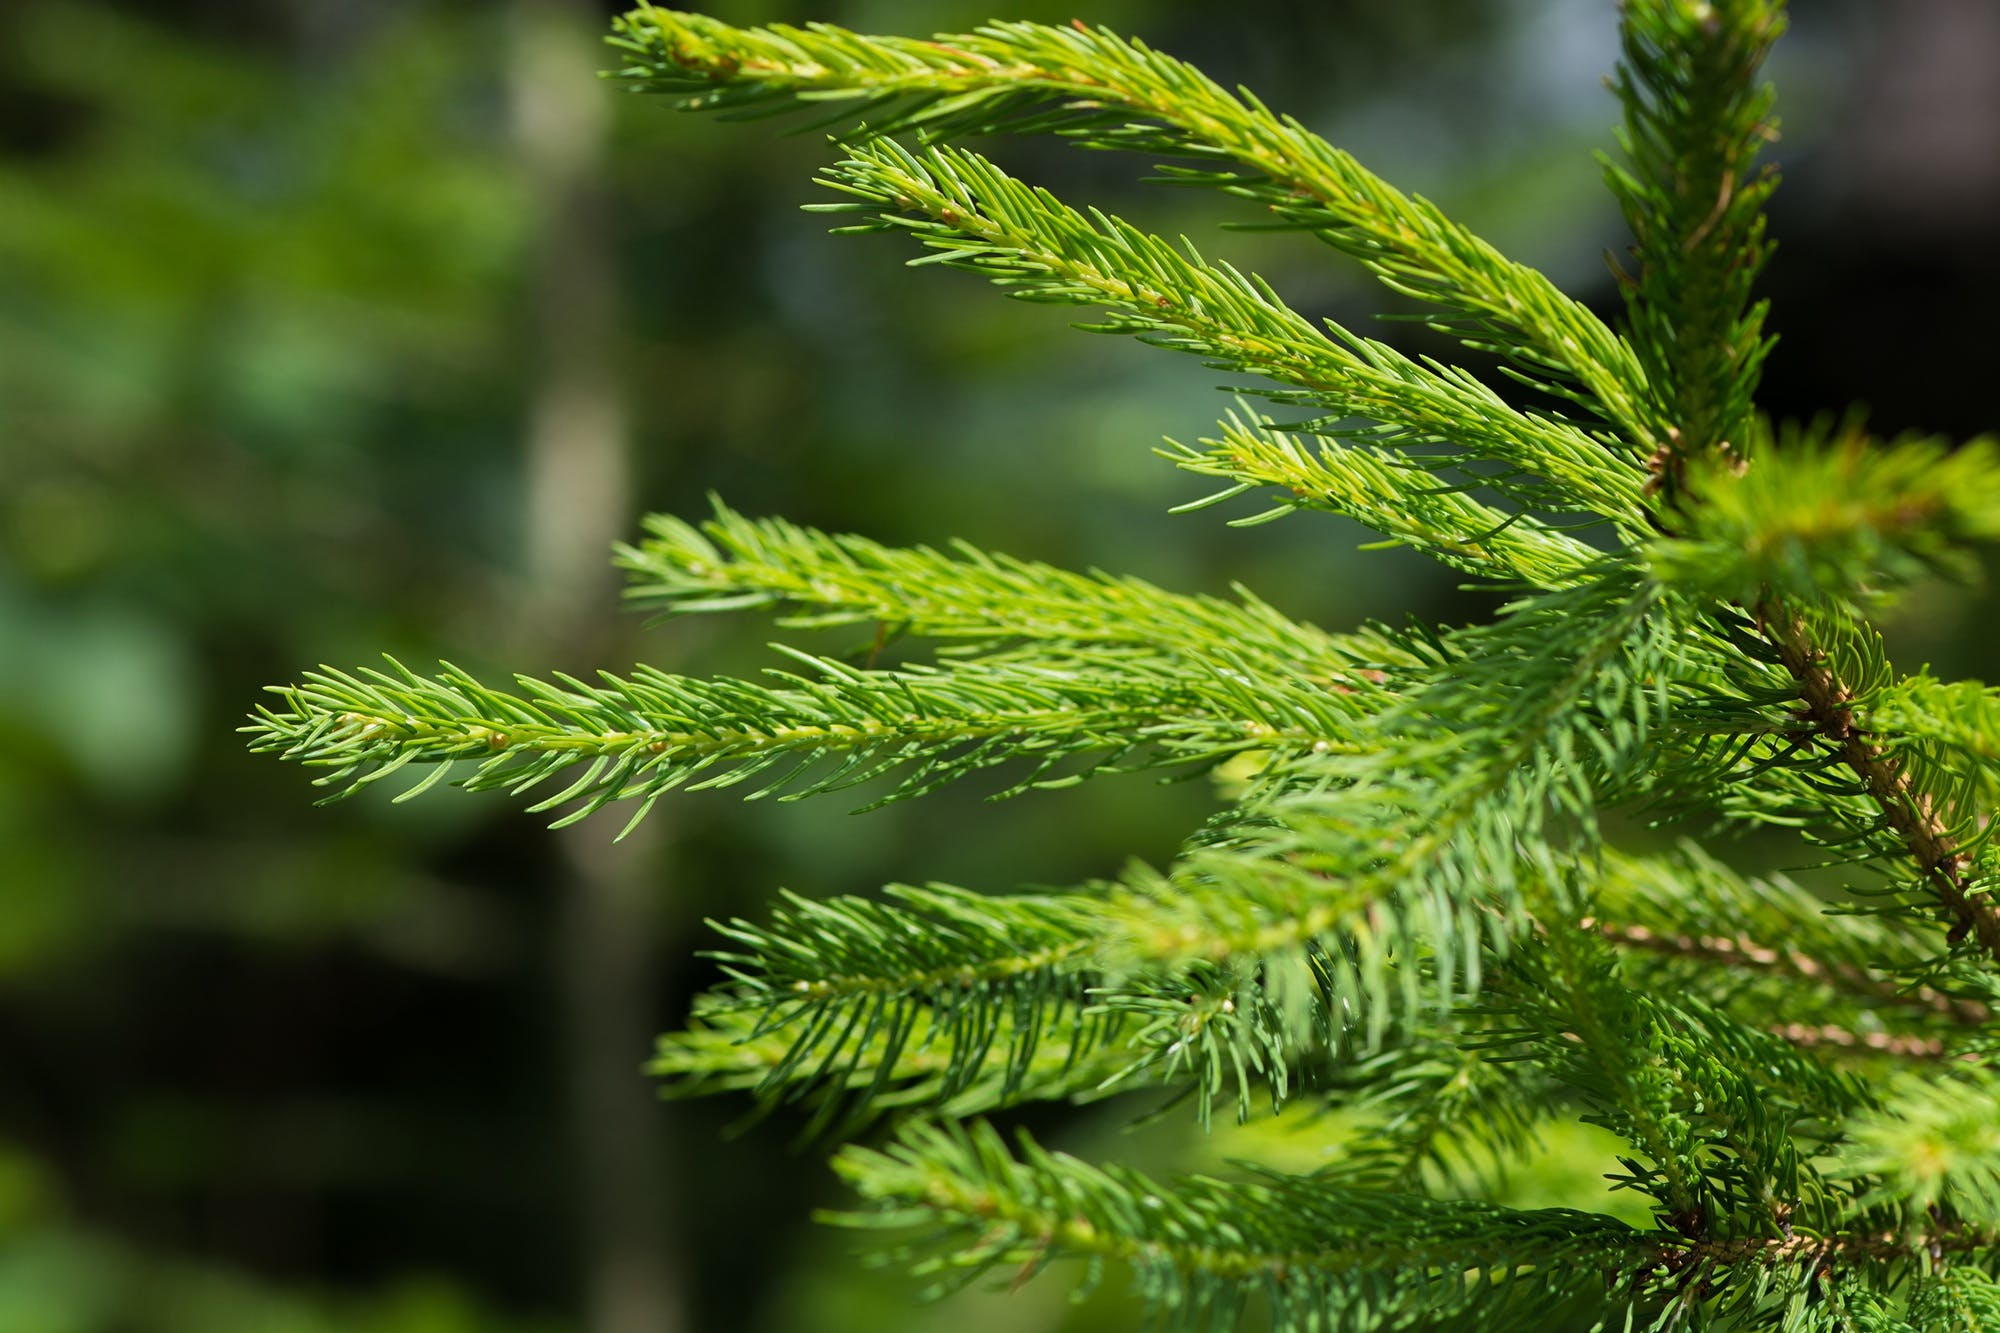 Green Pine Tree Leaf Closeup Photography during Daytime